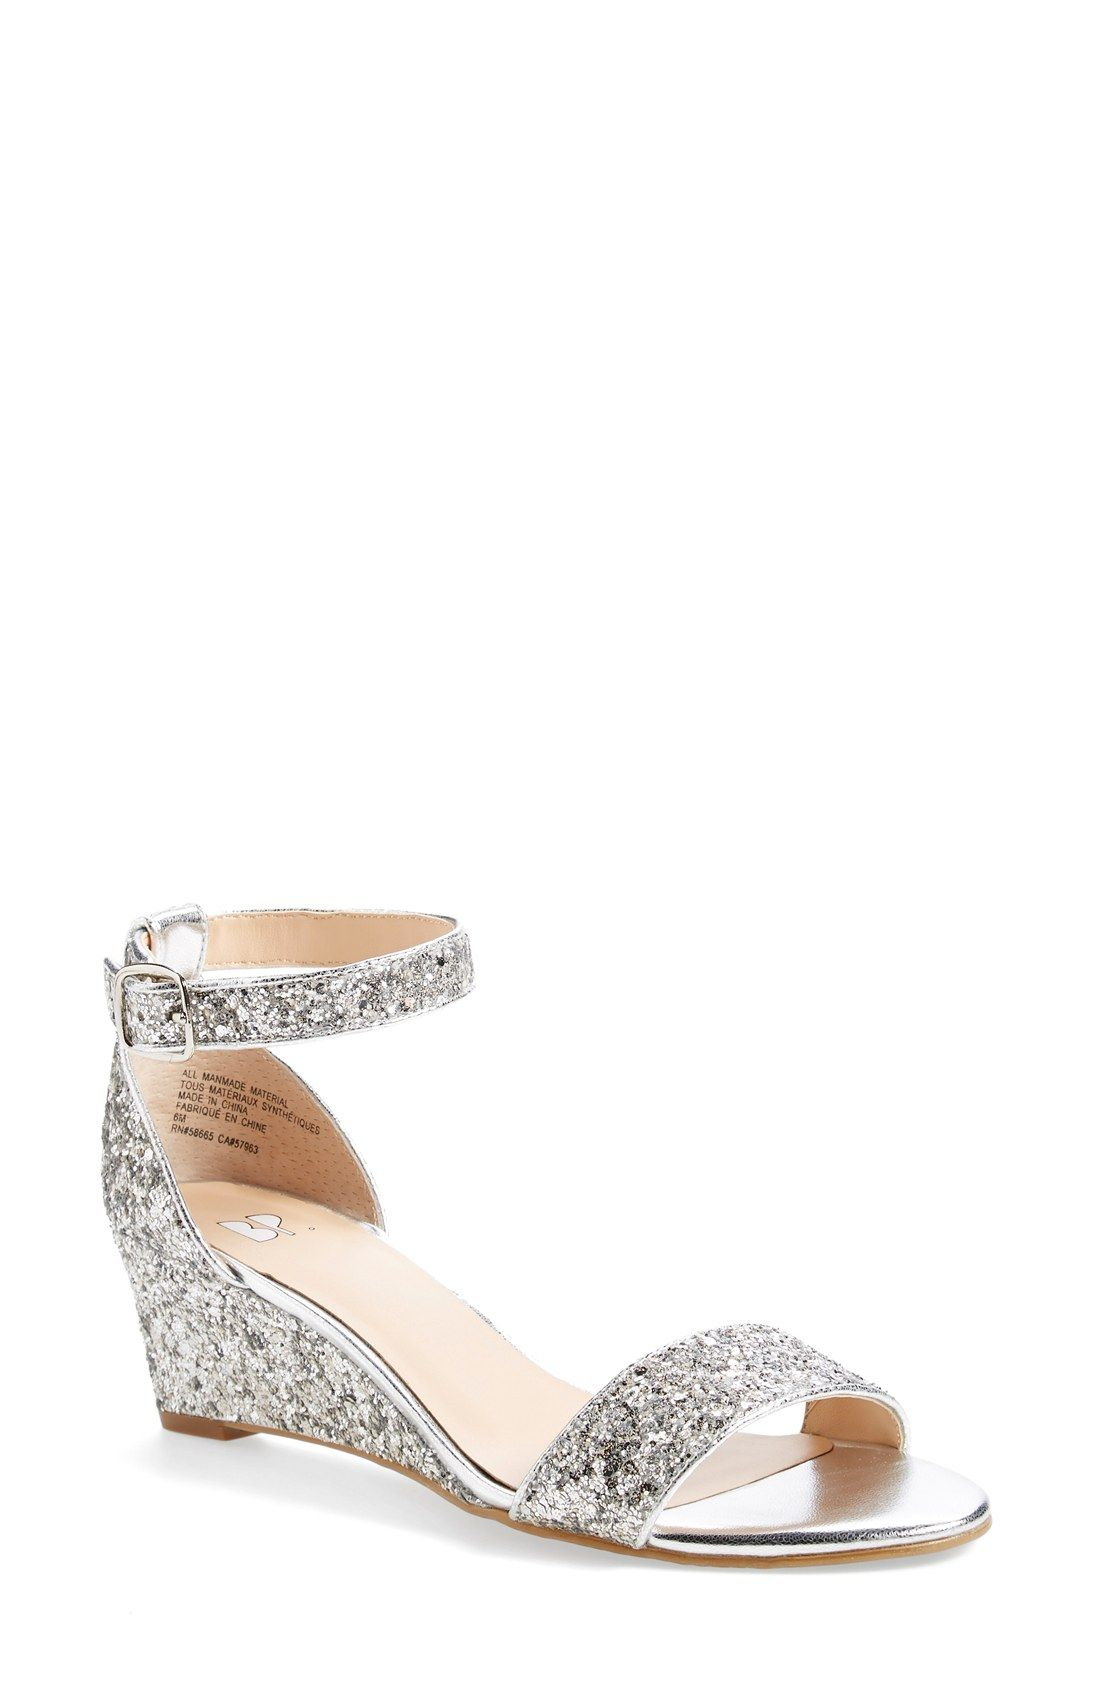 roxie wedge sandal razzle dazzle sandals and nordstrom